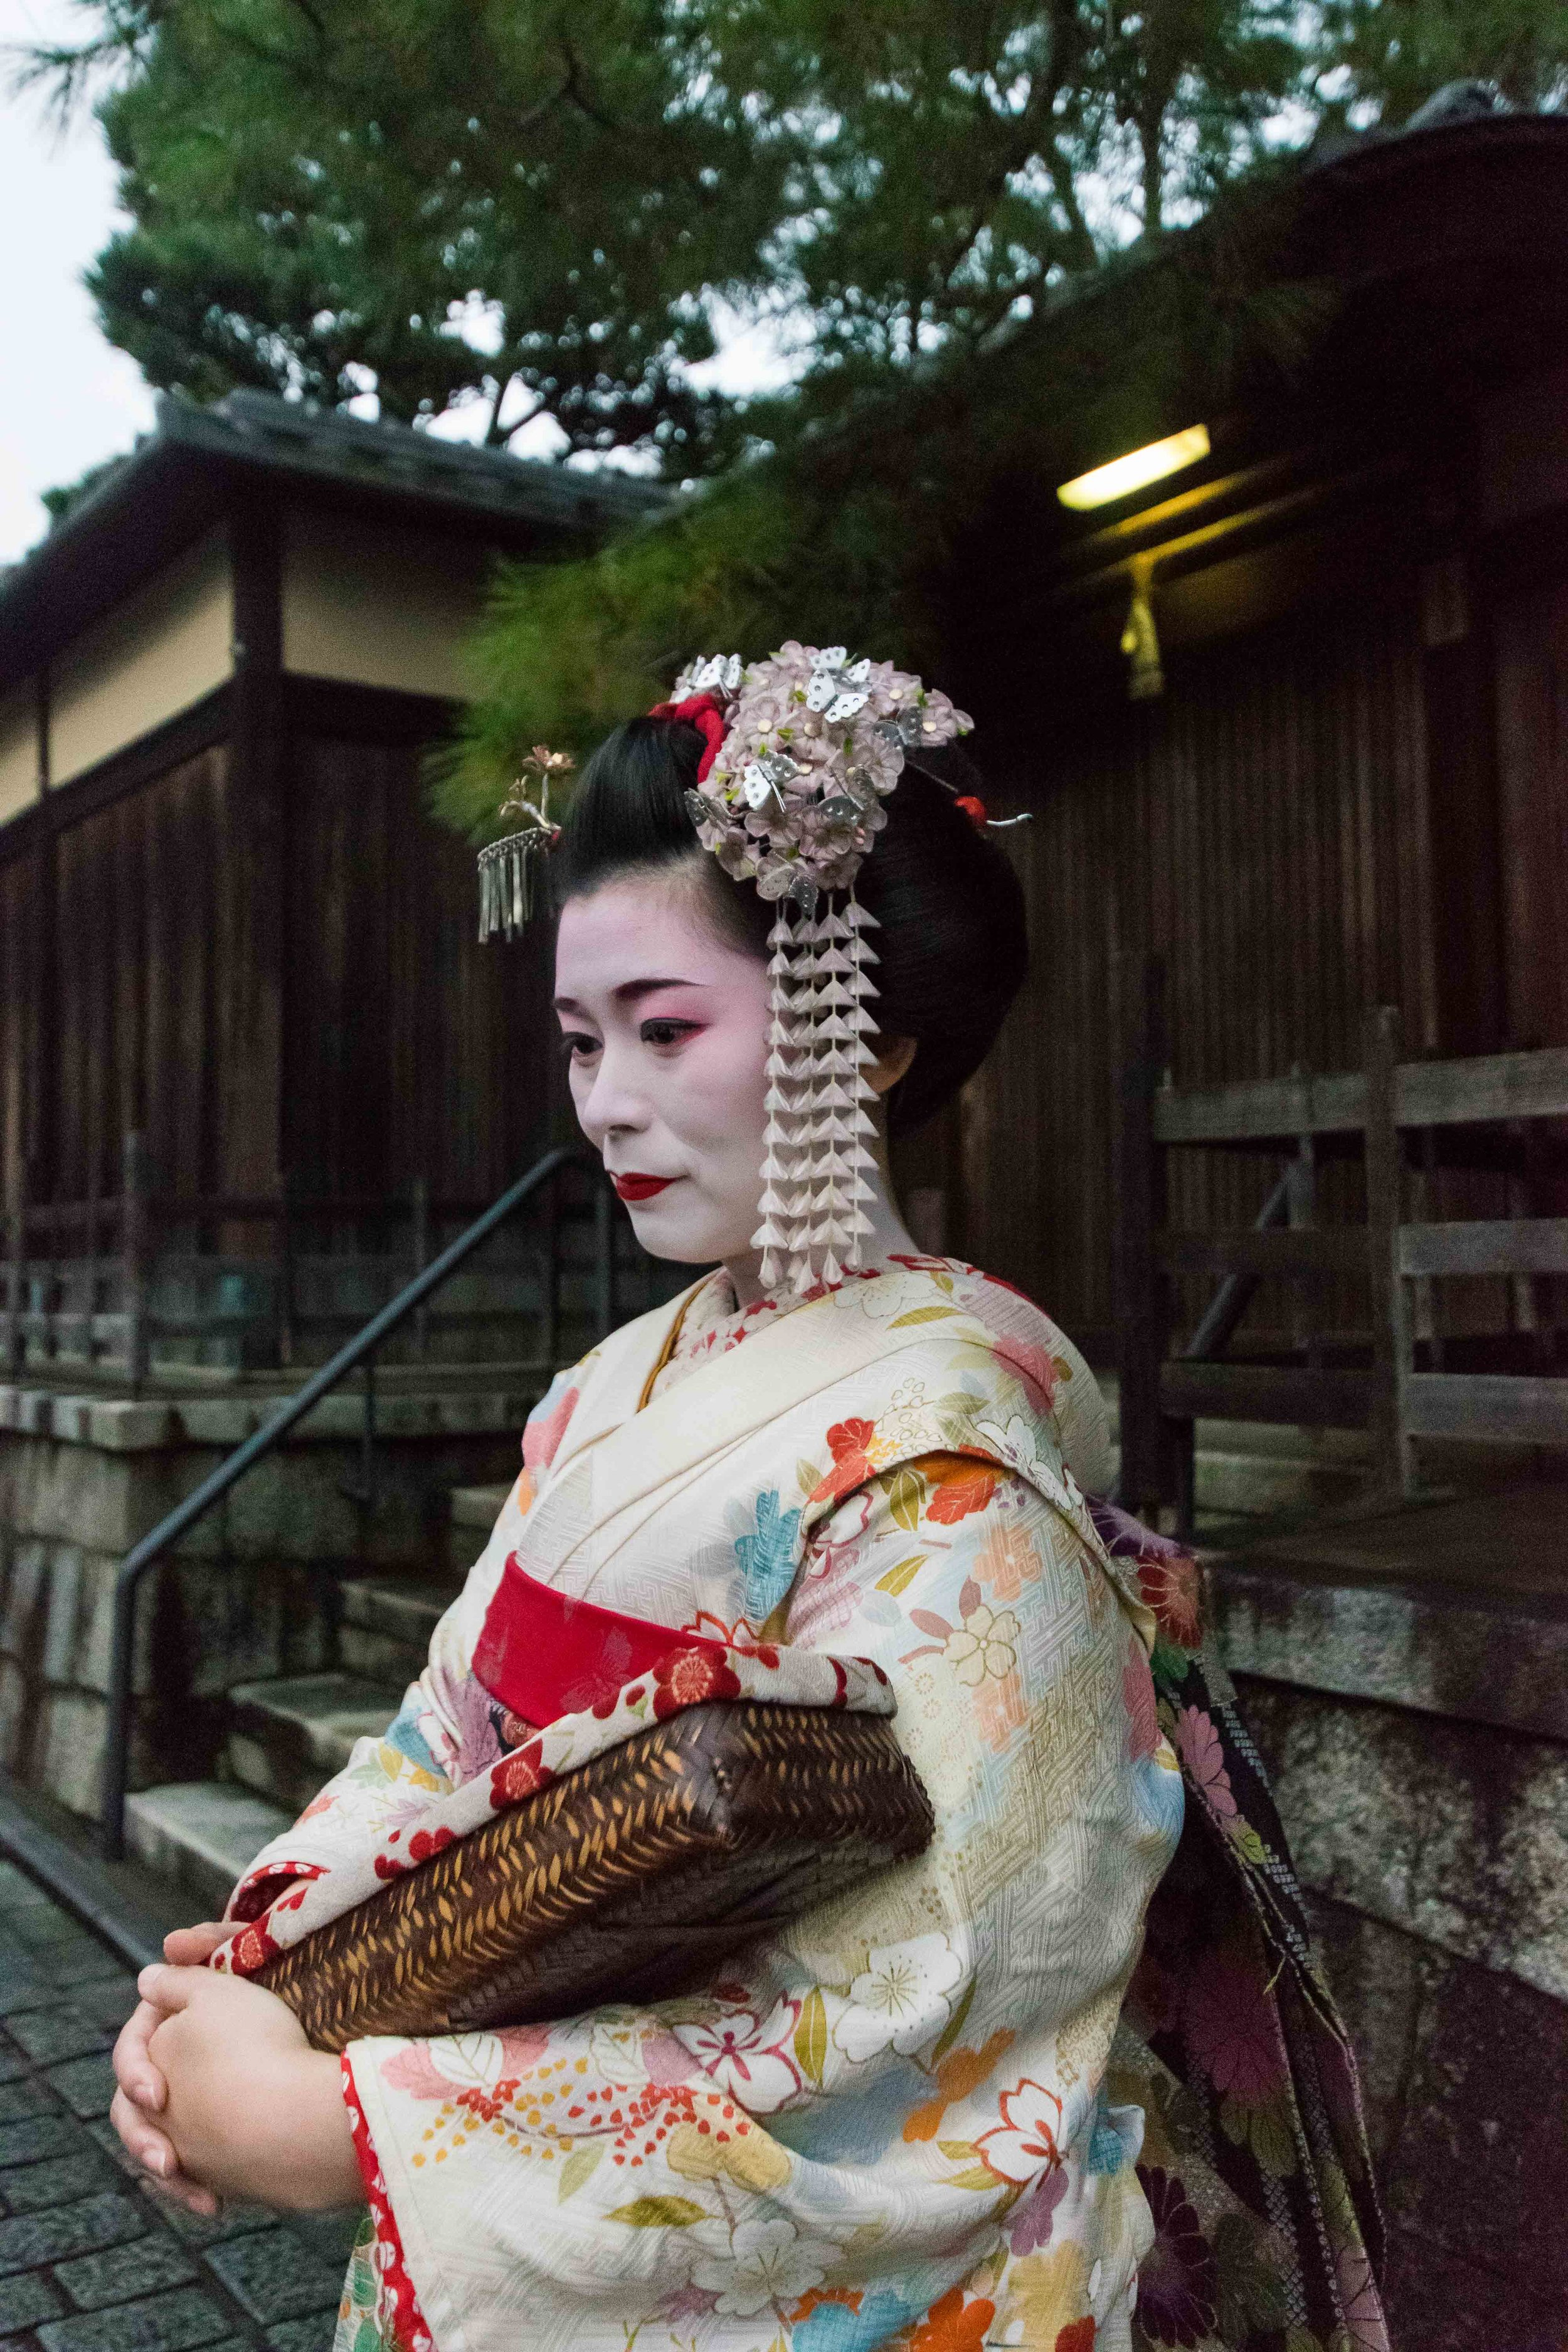 One of the top things you can not miss in Kyoto is seeing a Geisha